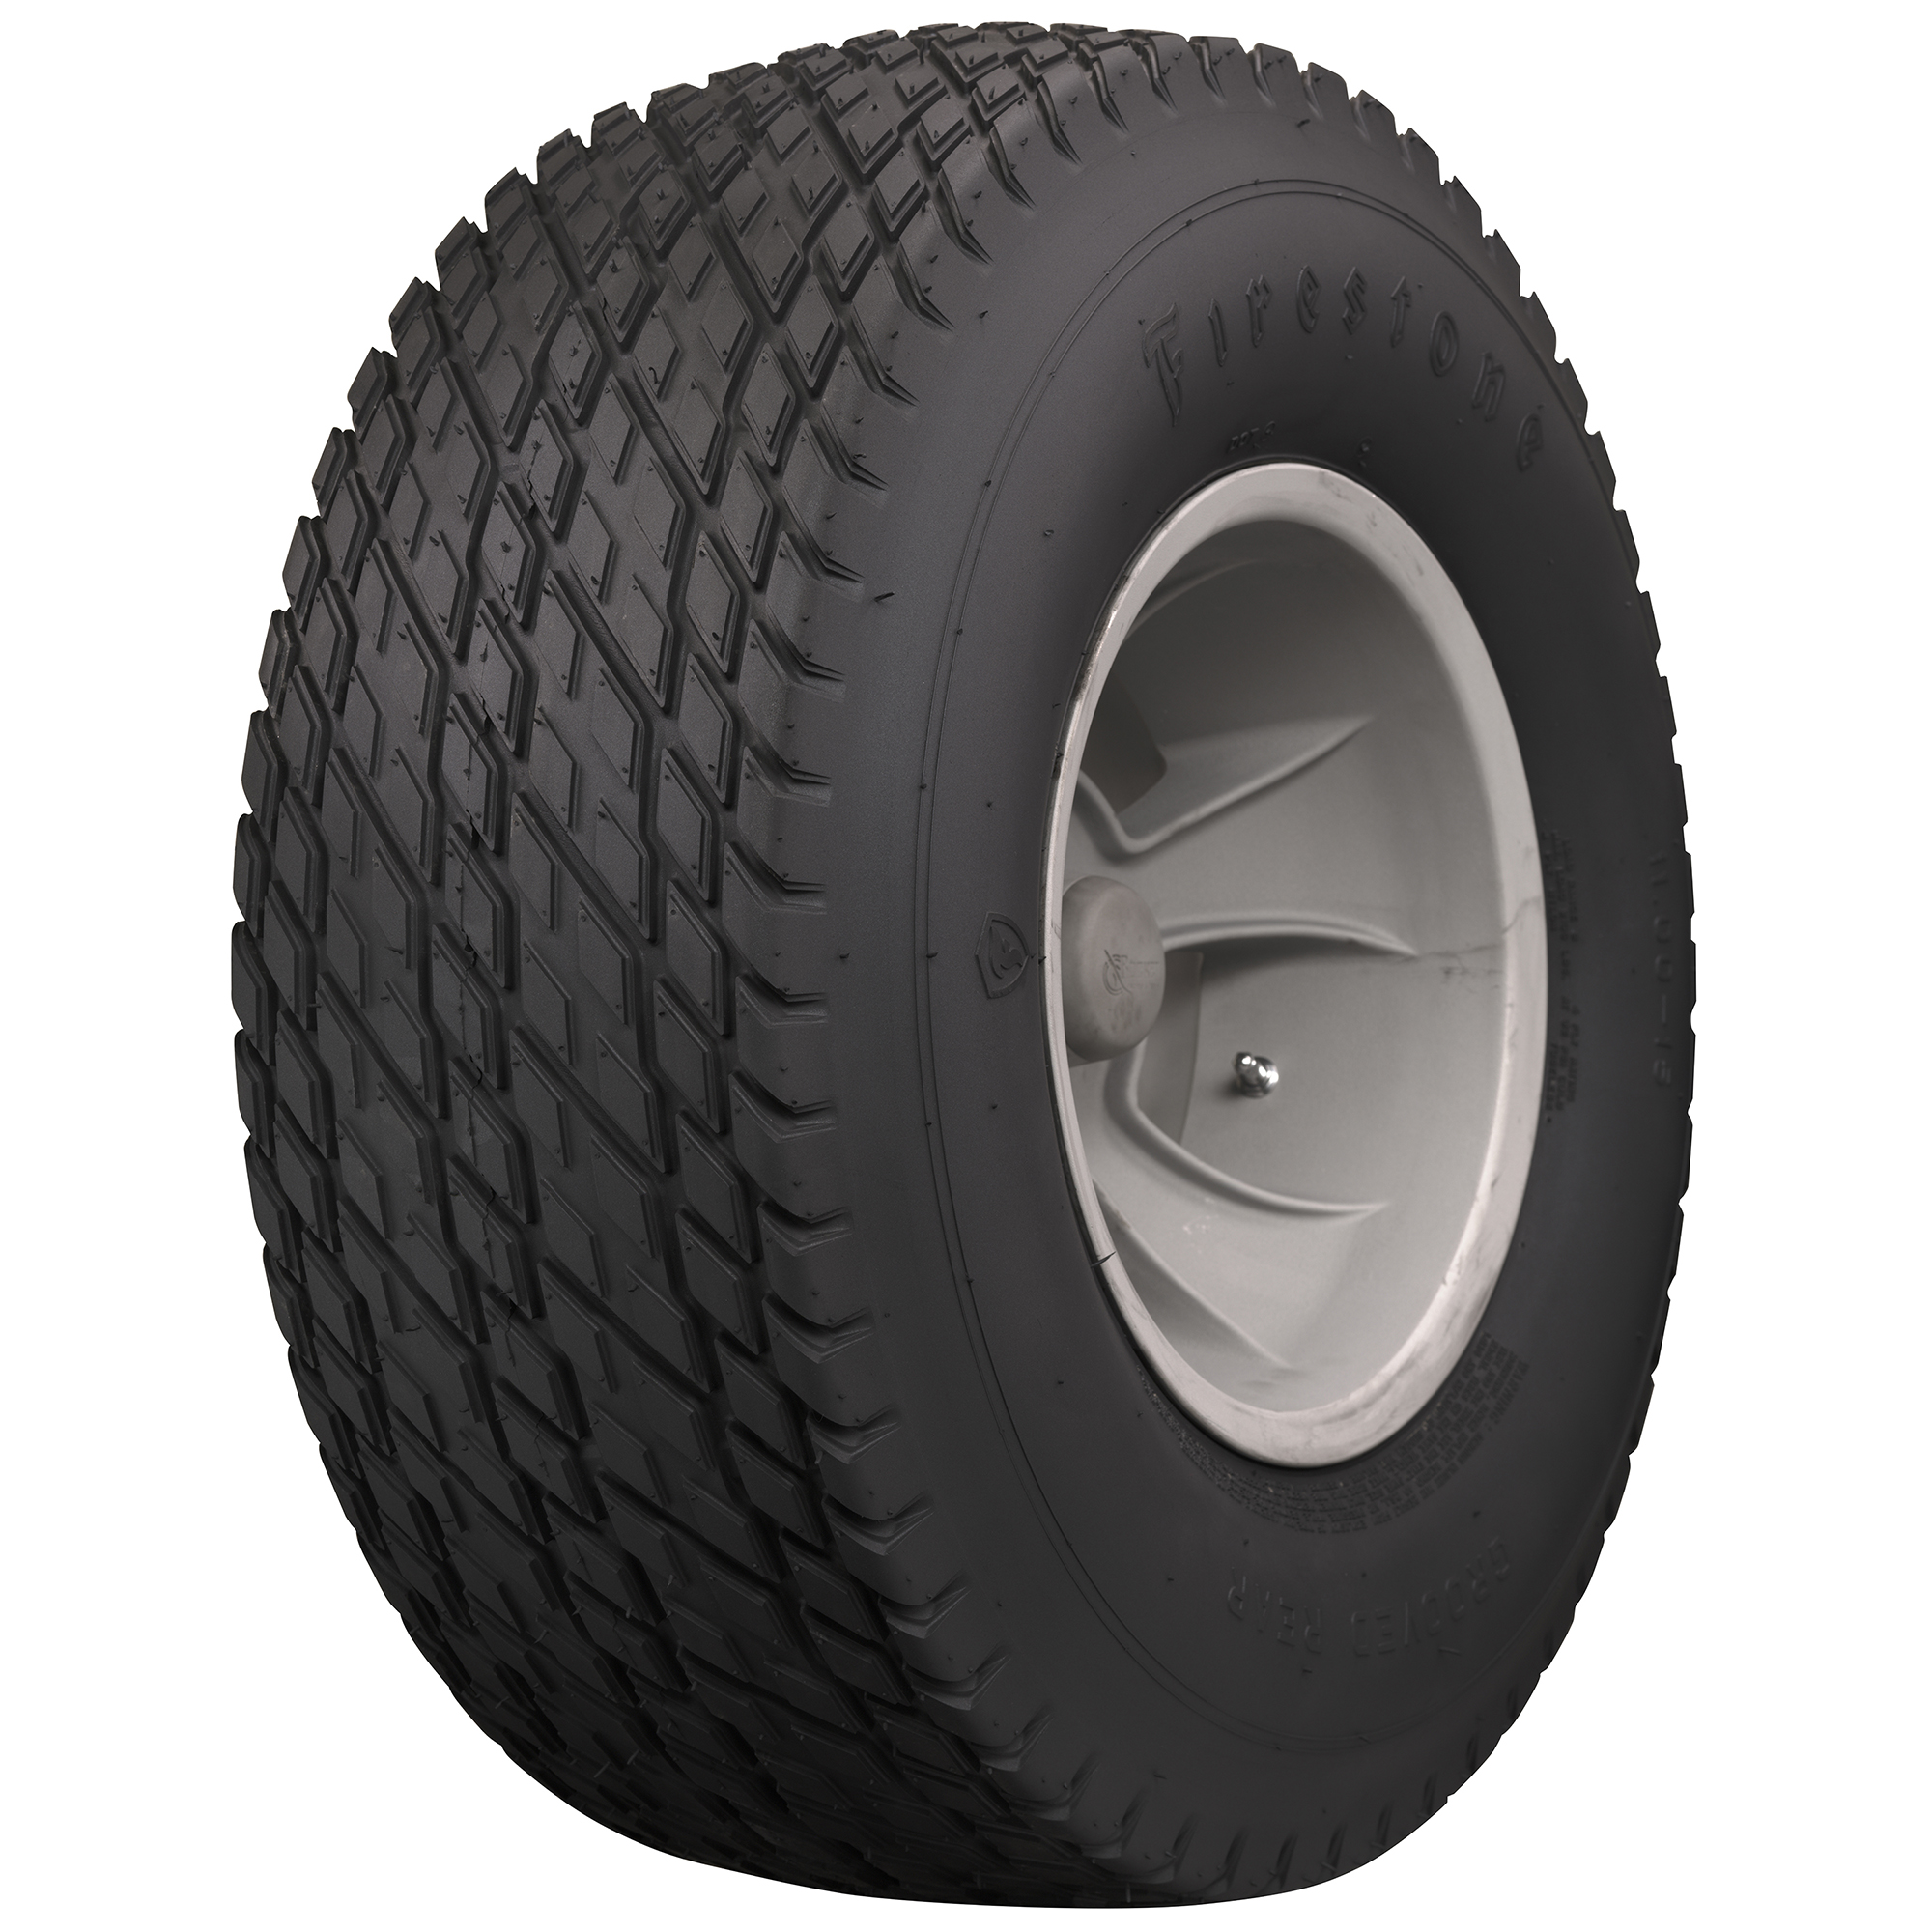 firestone dirt track tires for hot rods and vintage racers